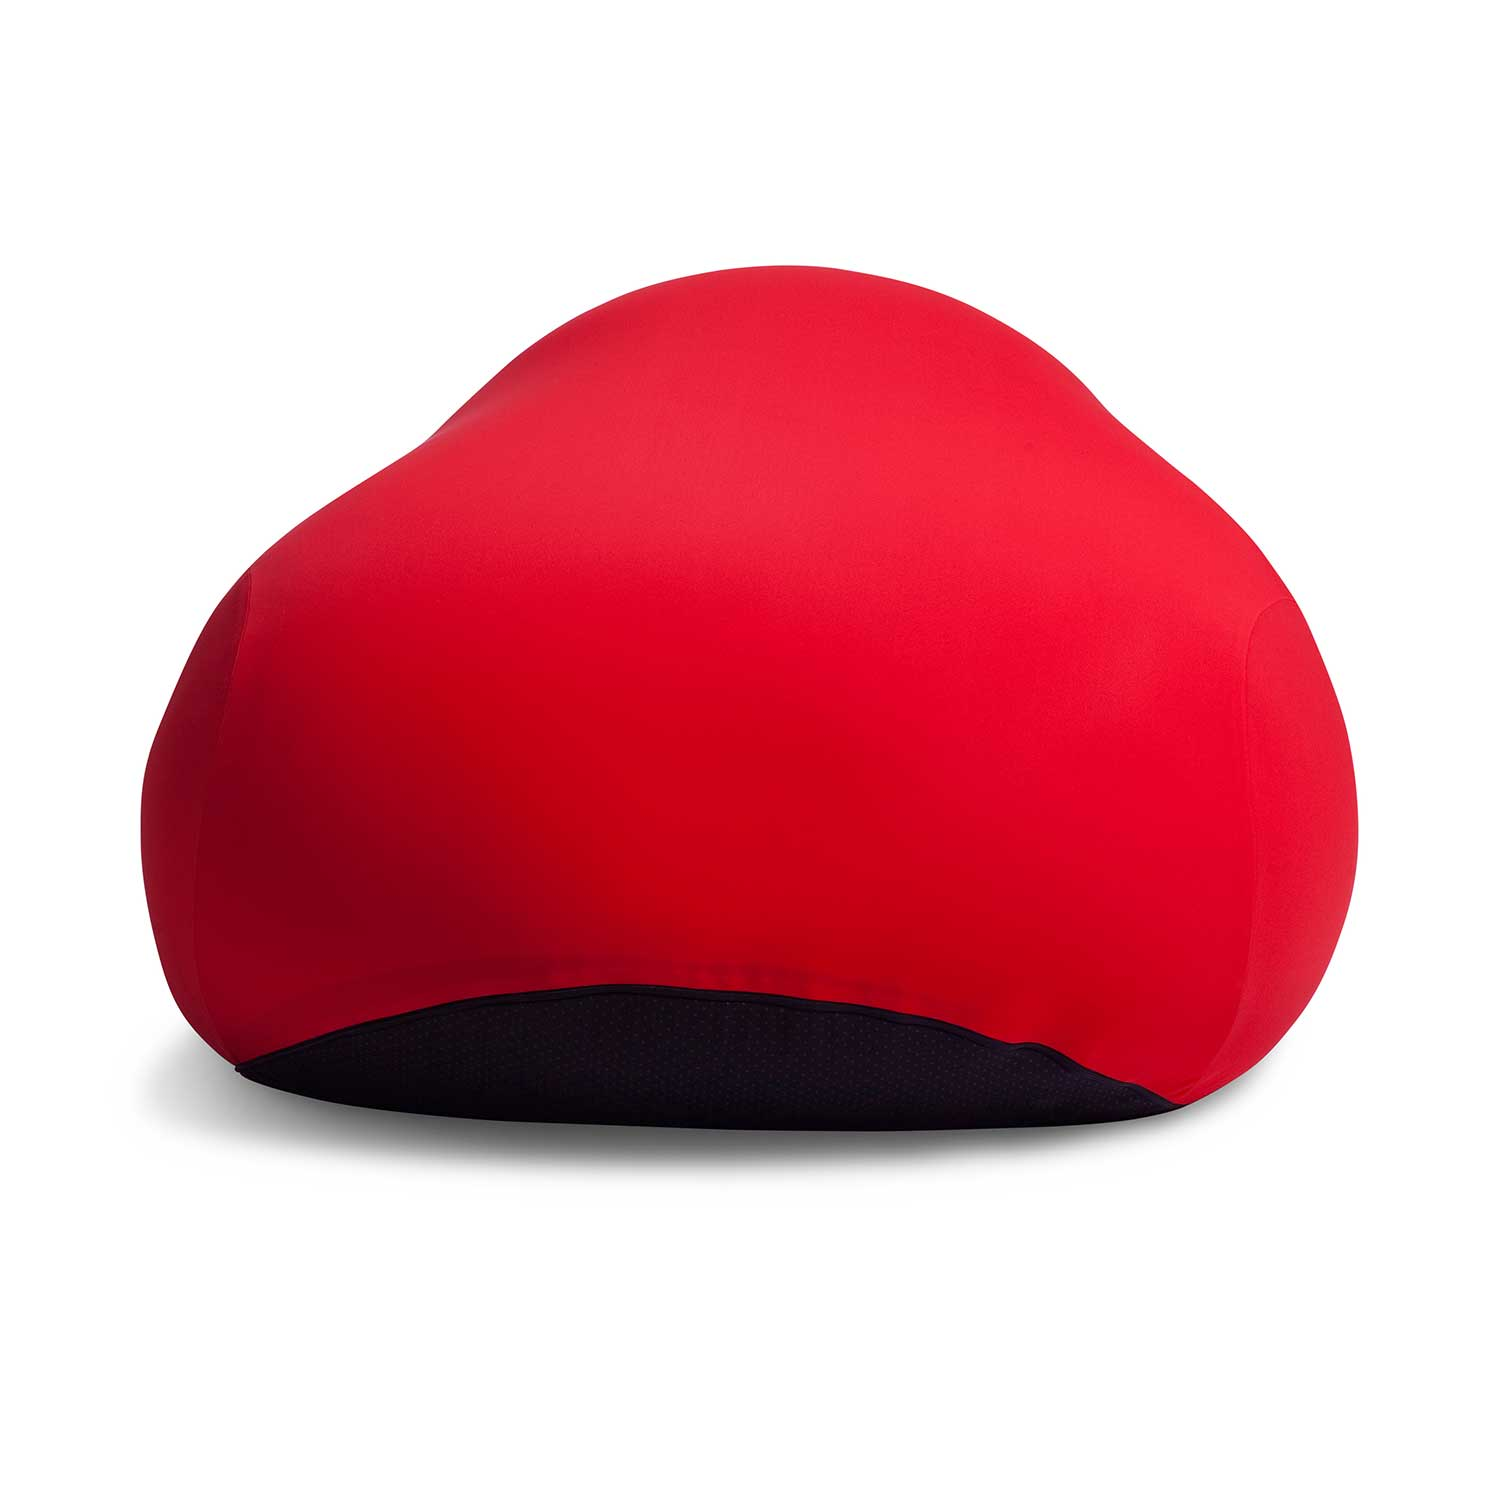 Space Pod Roulette Red Lycra Microbead Bean Bag Chair